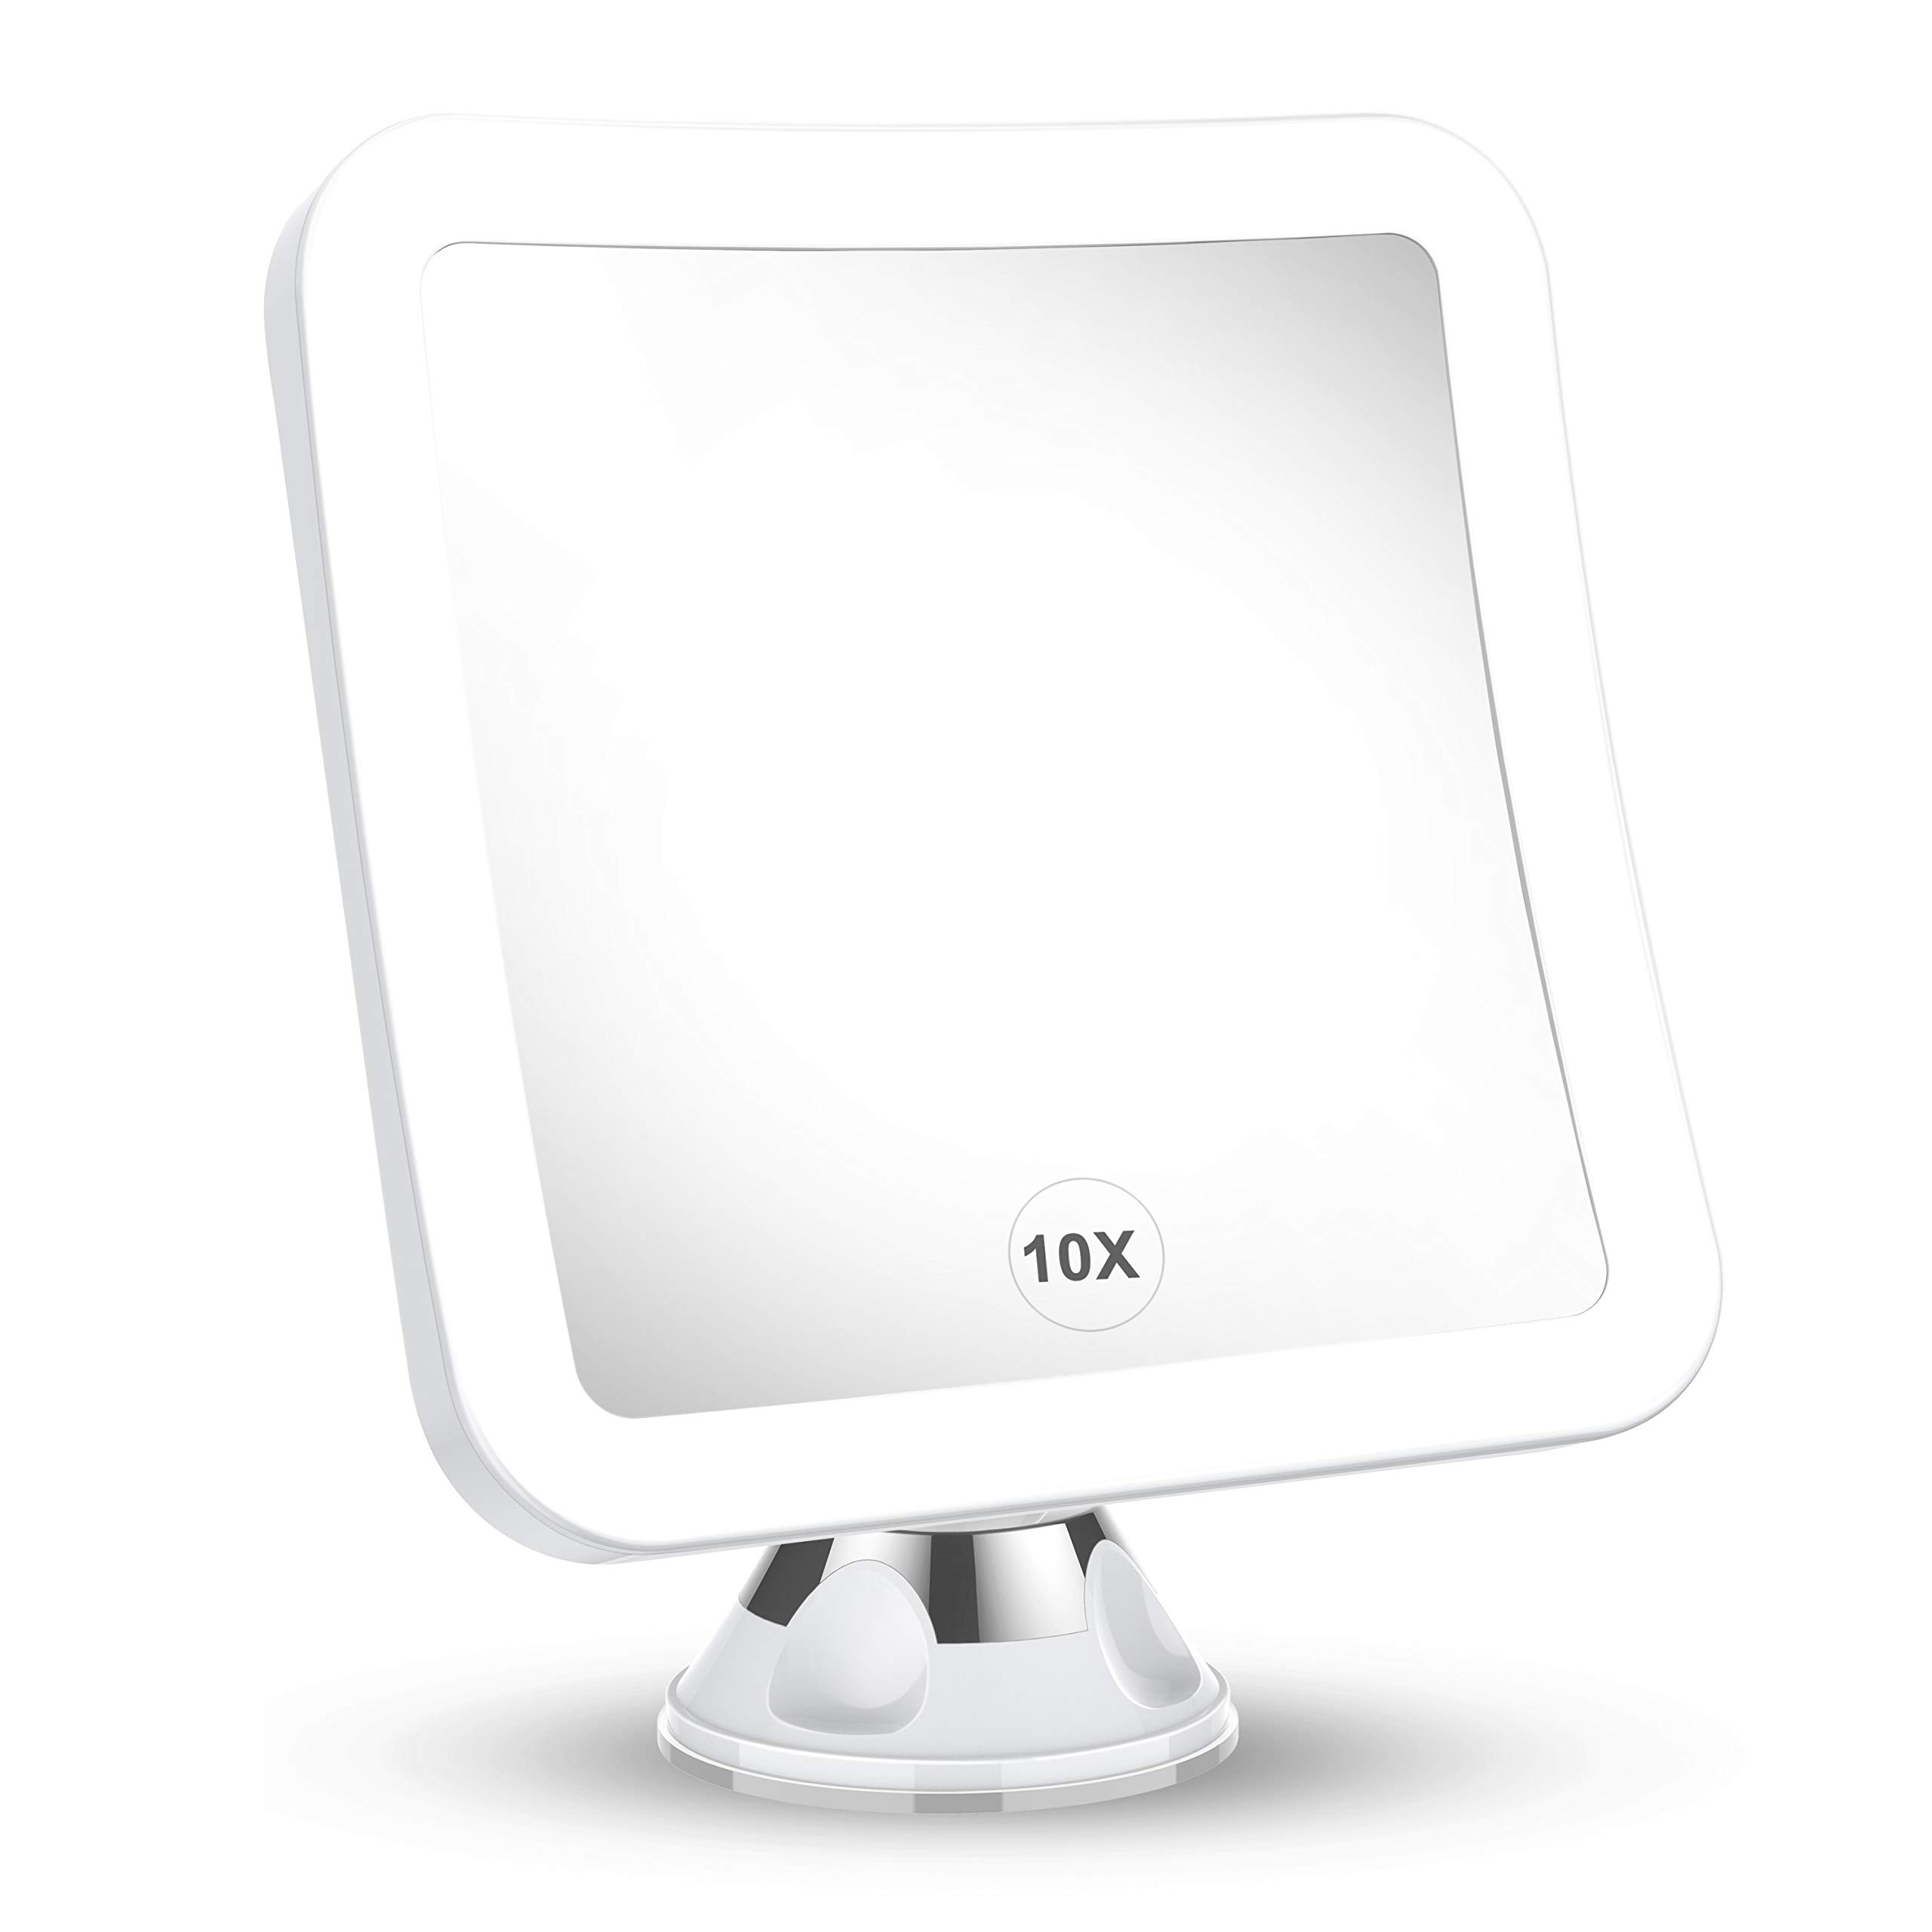 2021 Upgraded 10x Magnifying Lighted Makeup Mirror with Natural White LED Lights, 360°Swivel Portable Cordless Makeup Mirrors with Locking Suction Base for Home Bathroom Shower and Travel